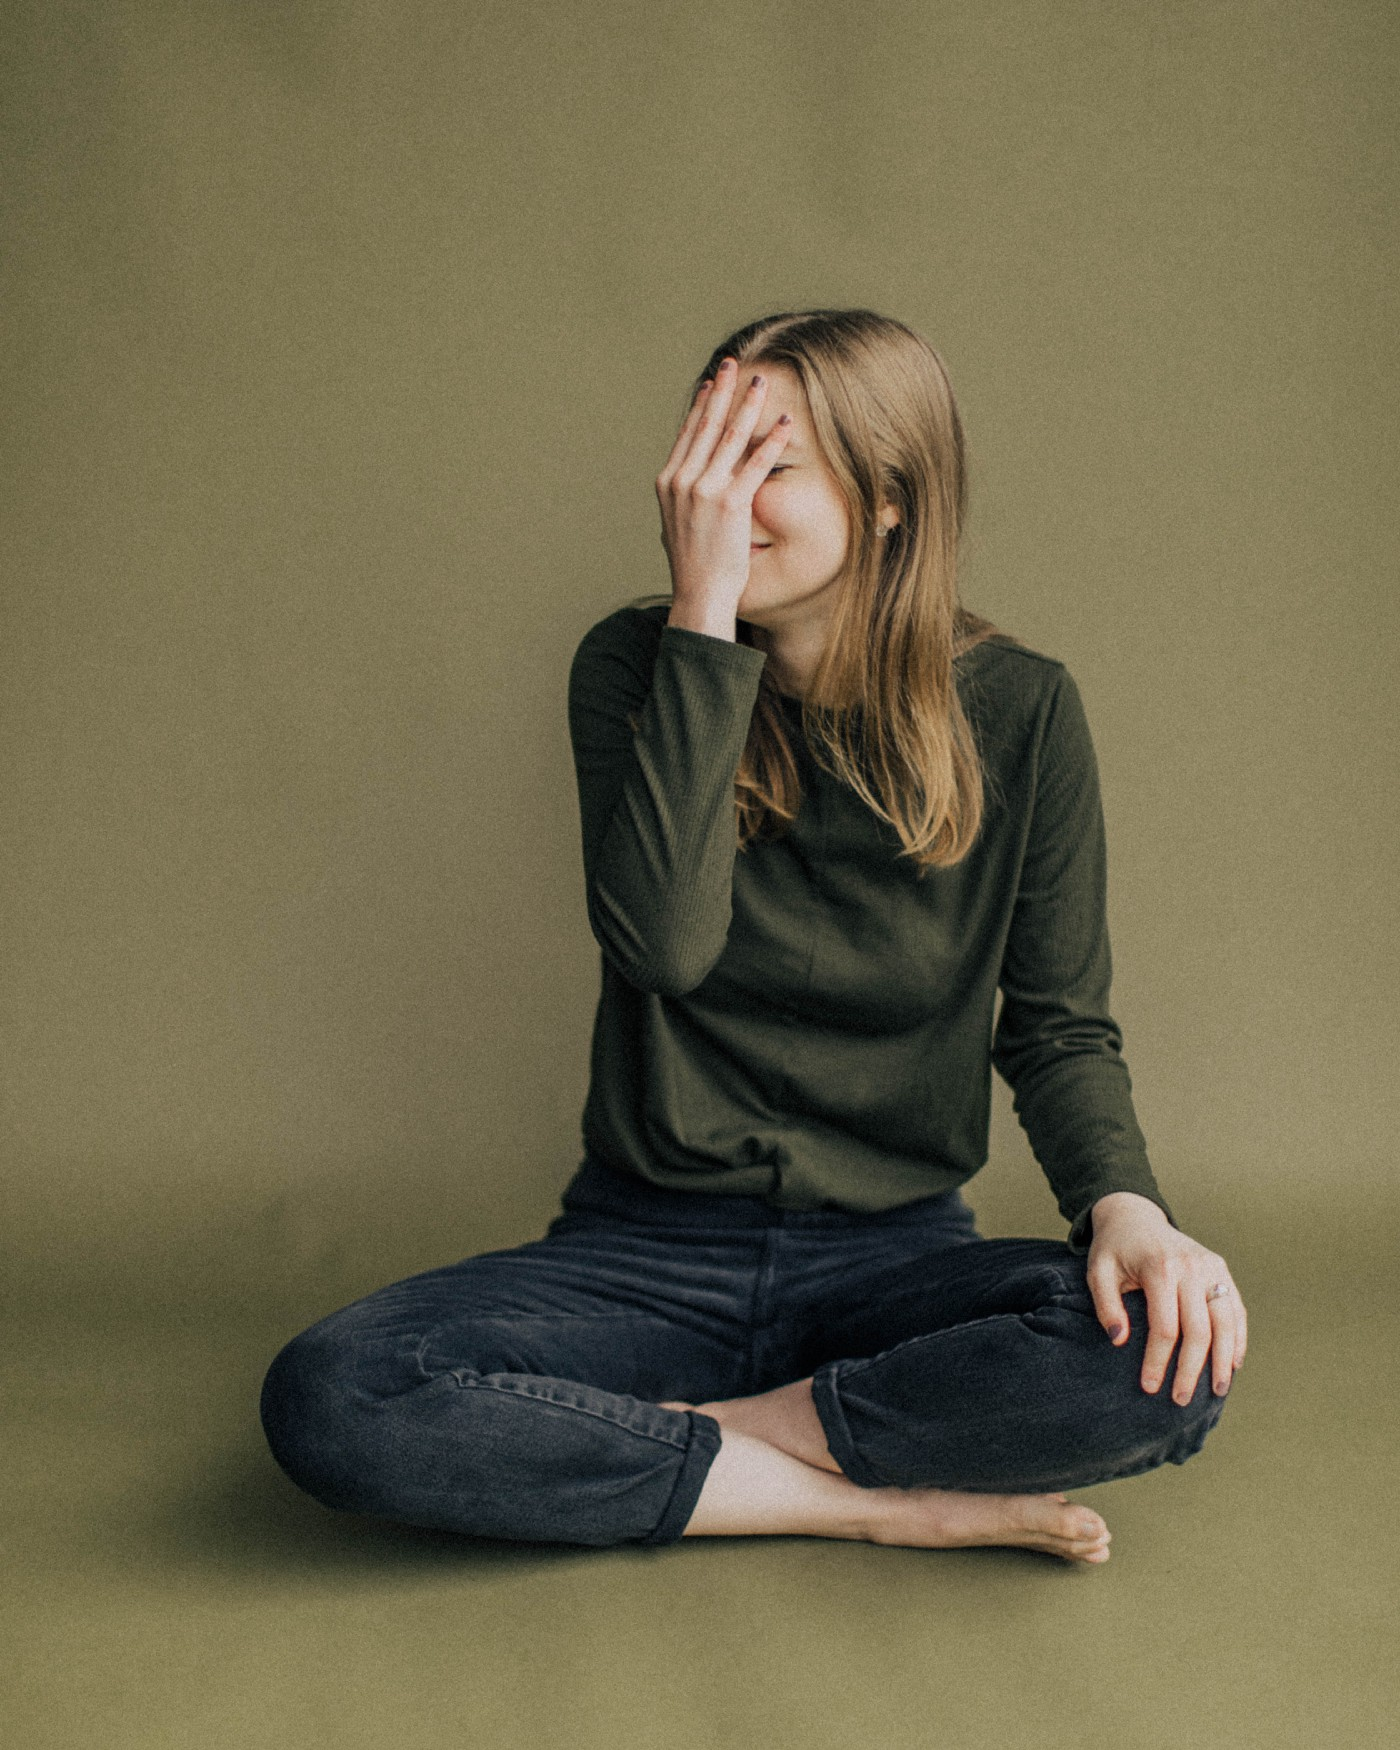 Lady wearing a green jumper, blue jeans sat crossed legged with her right hand covering her face because of shame